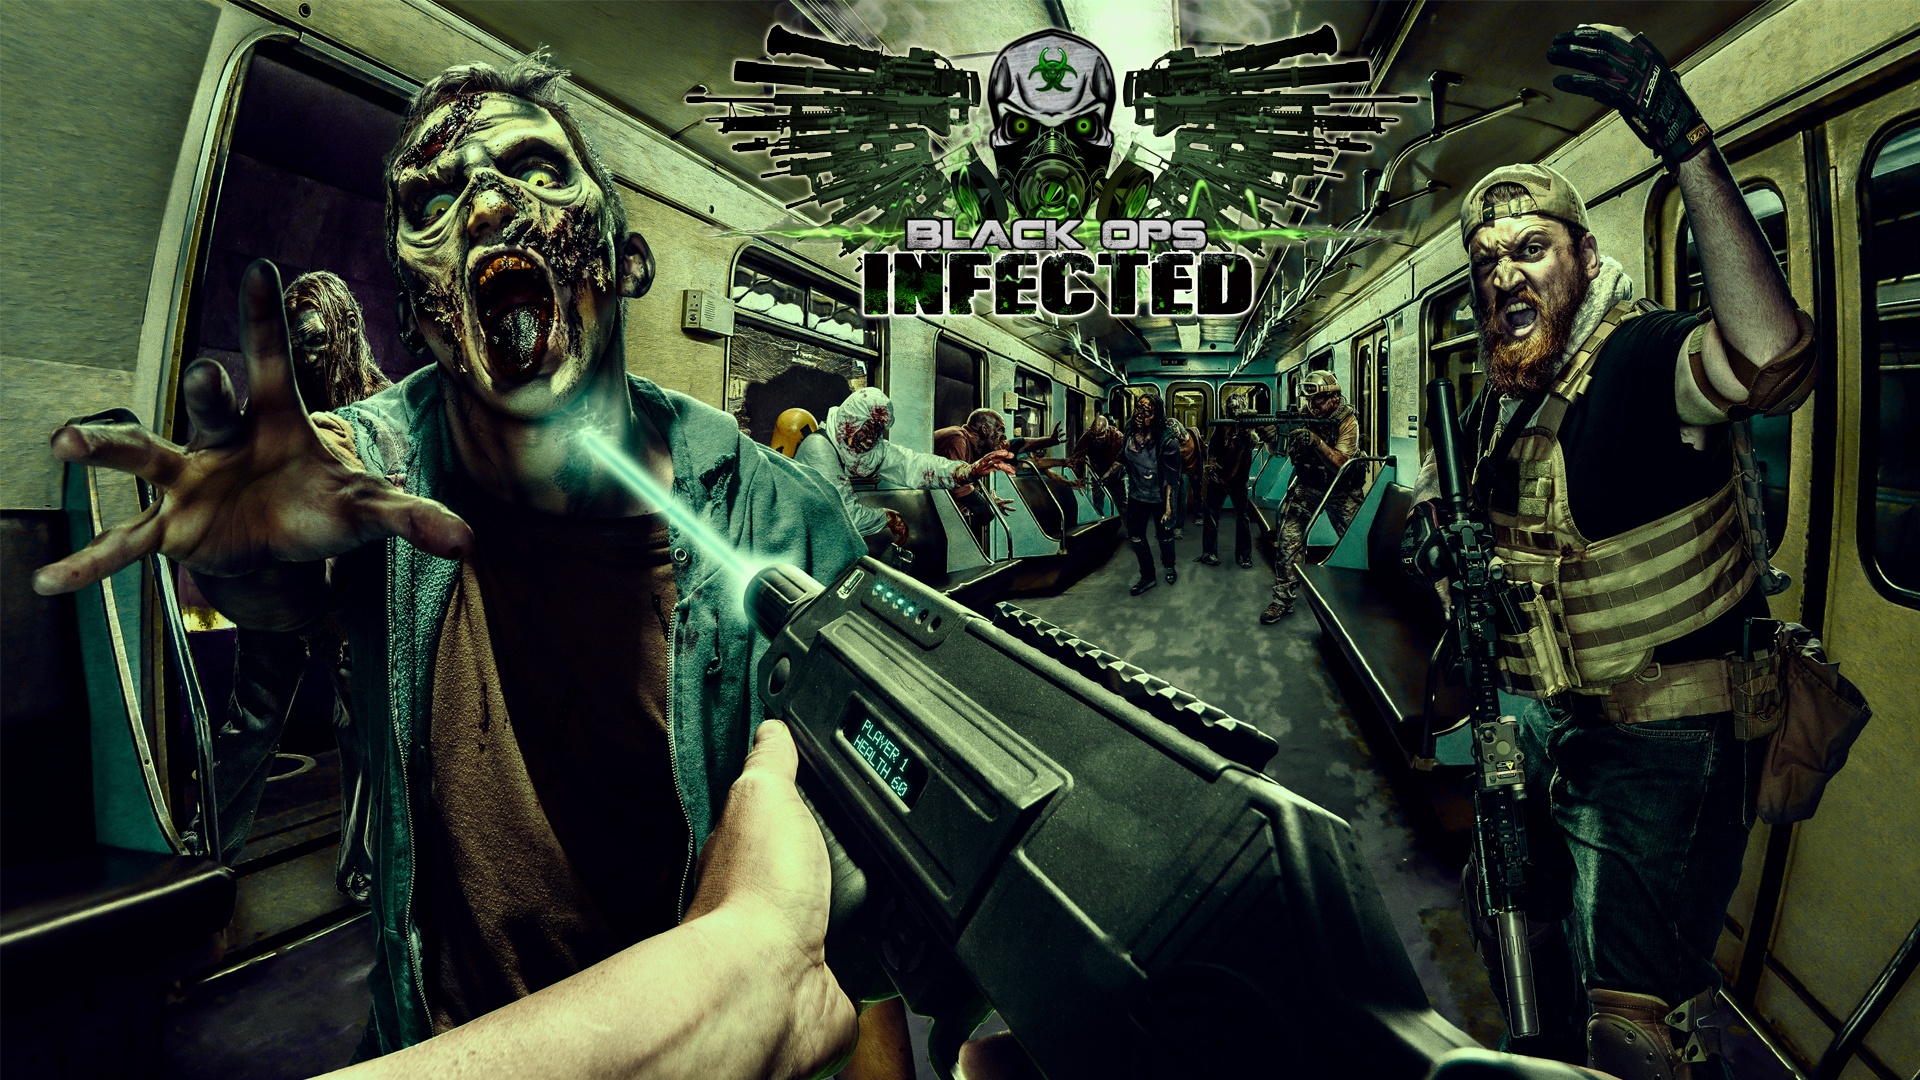 black-ops-infected-hero-image-with-logo-slide-1